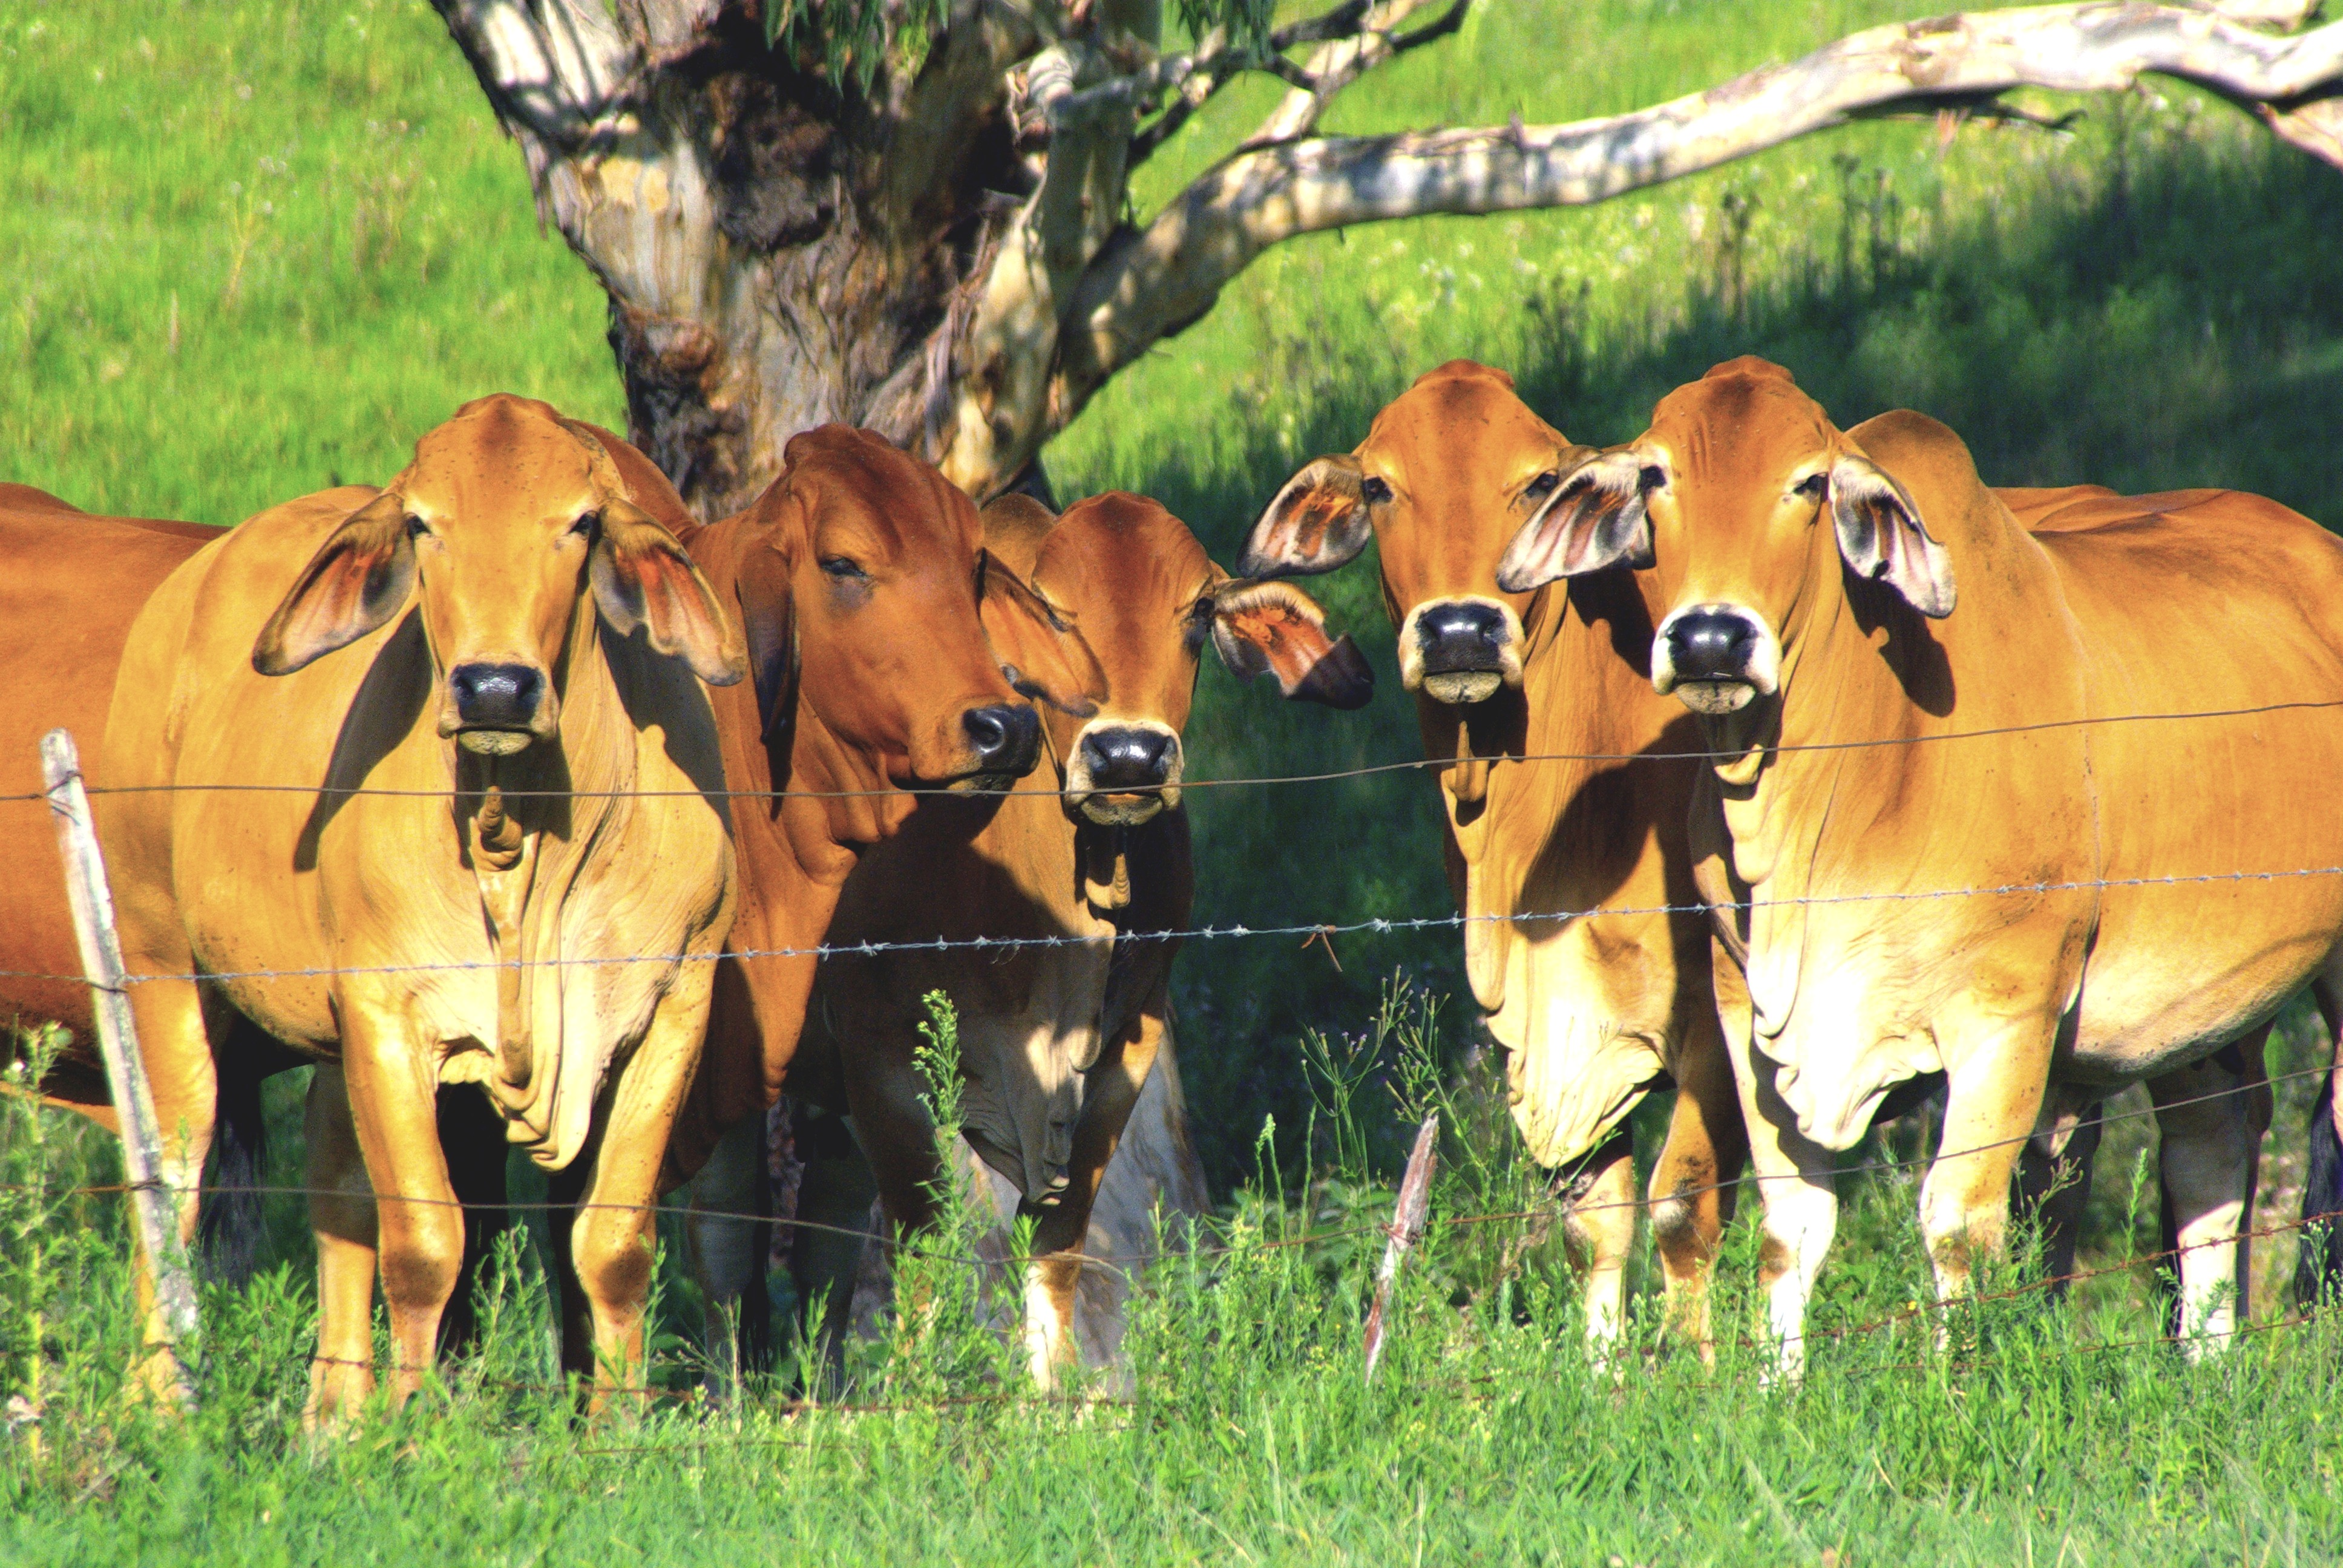 Brown Australian cattle grazing